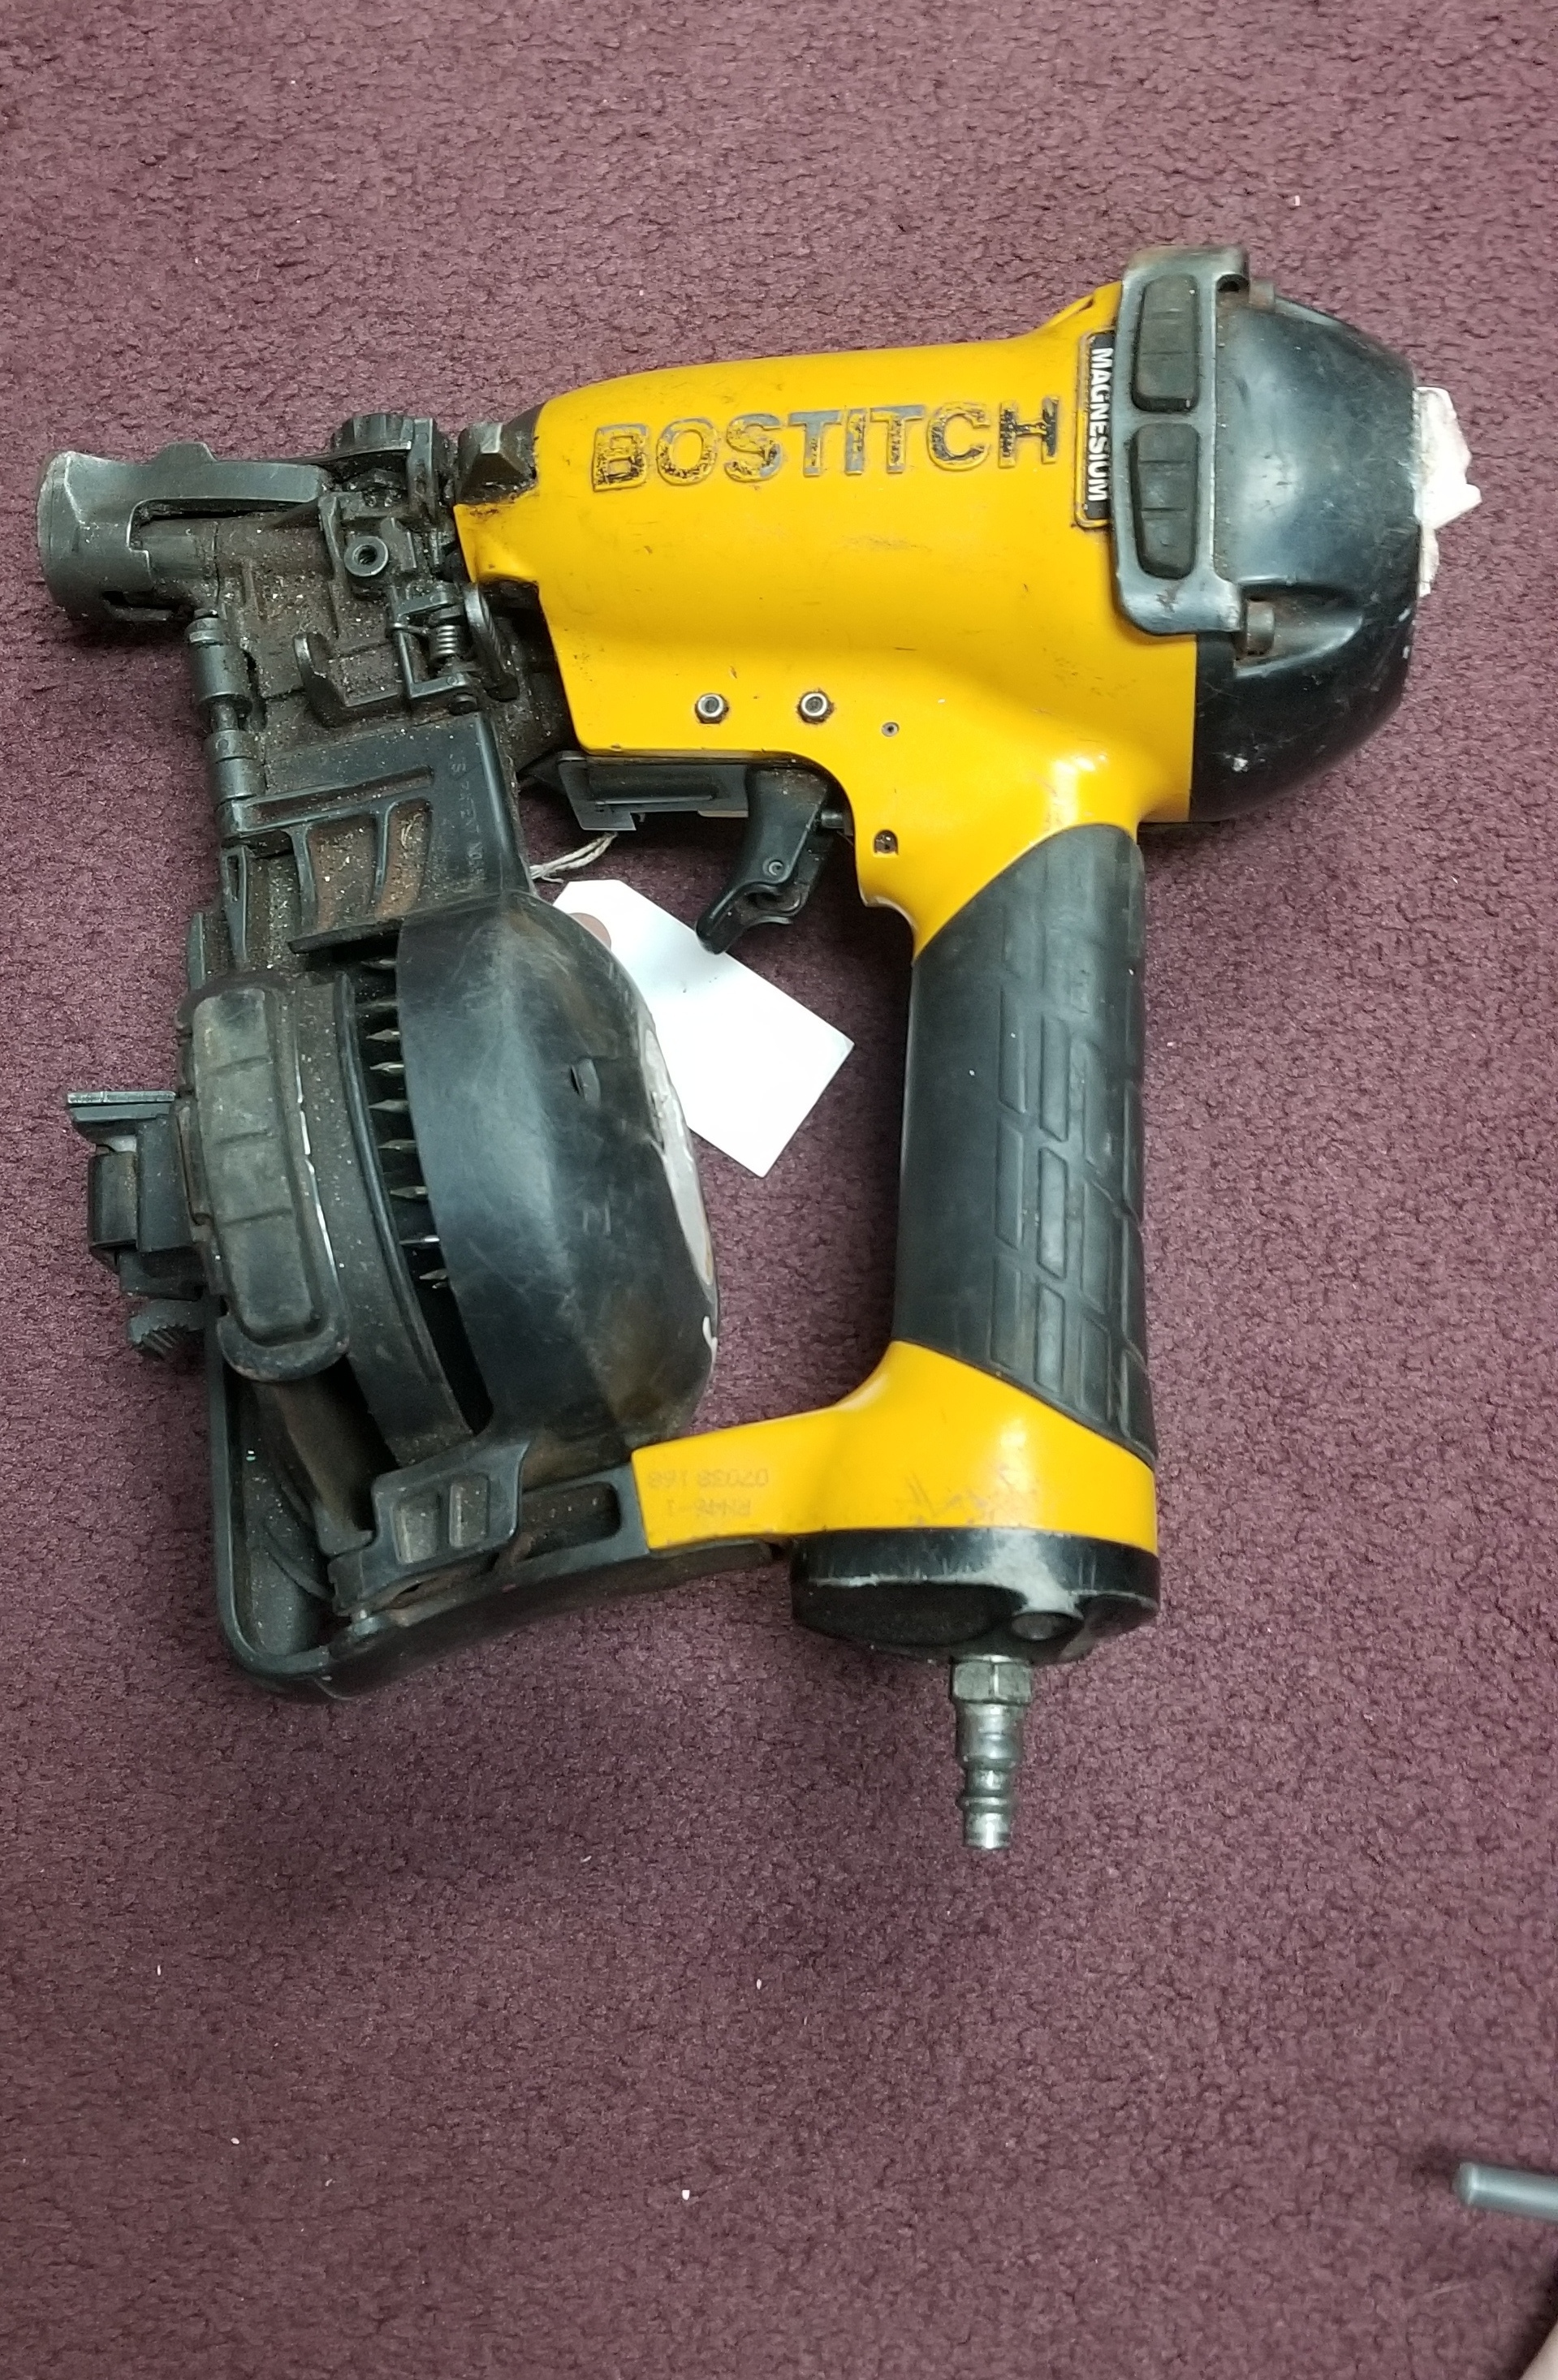 BOSTITCH - RN46-1 - TOOLS